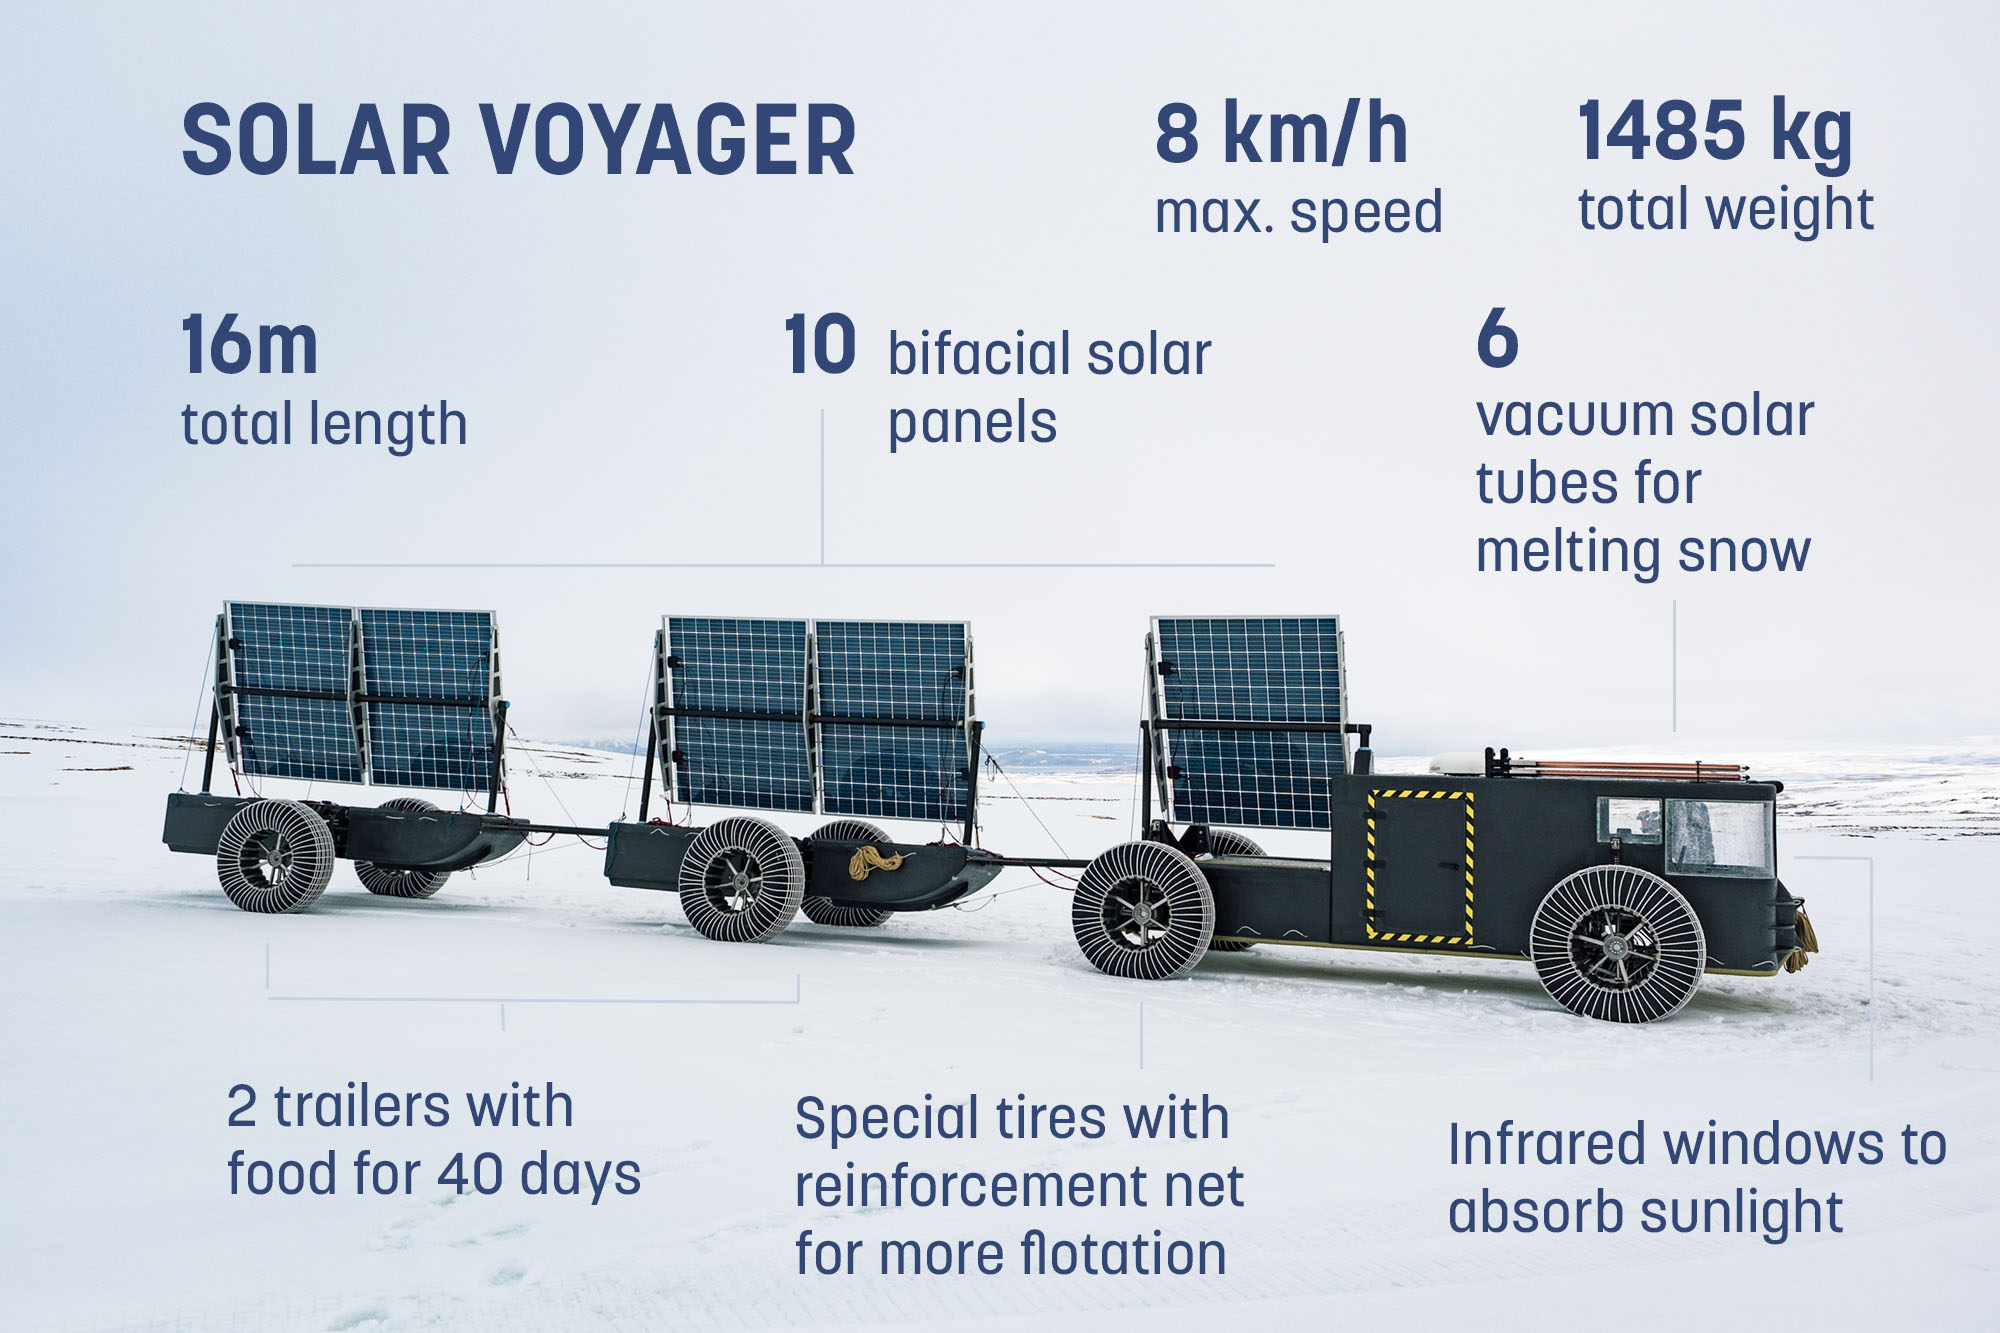 solar%20voyager%20facts_0.jpg